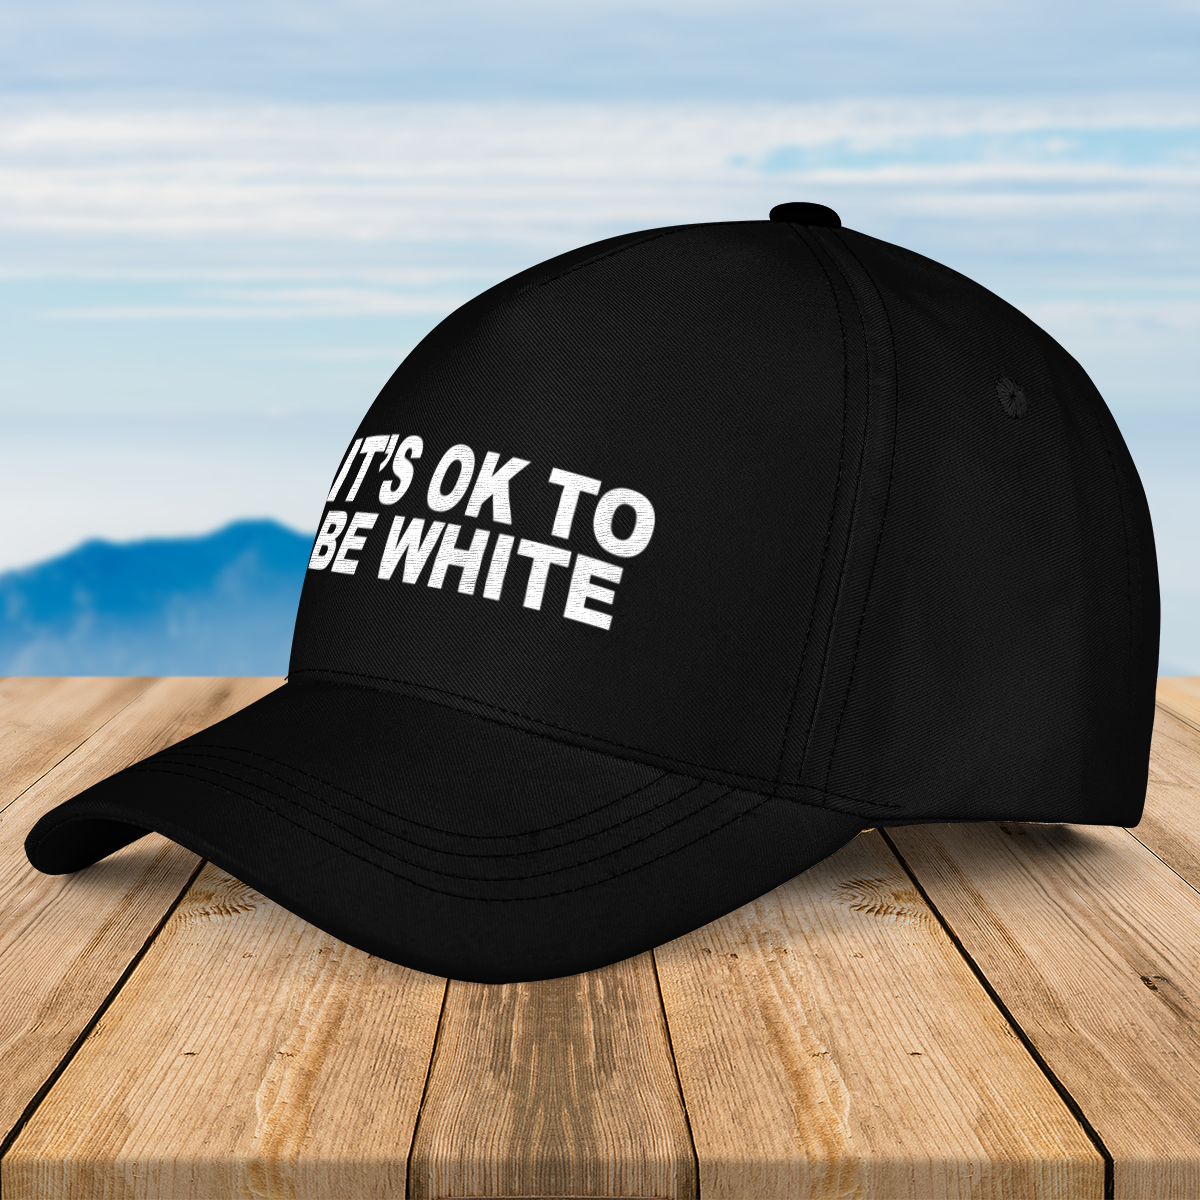 Its ok to be white cap 3